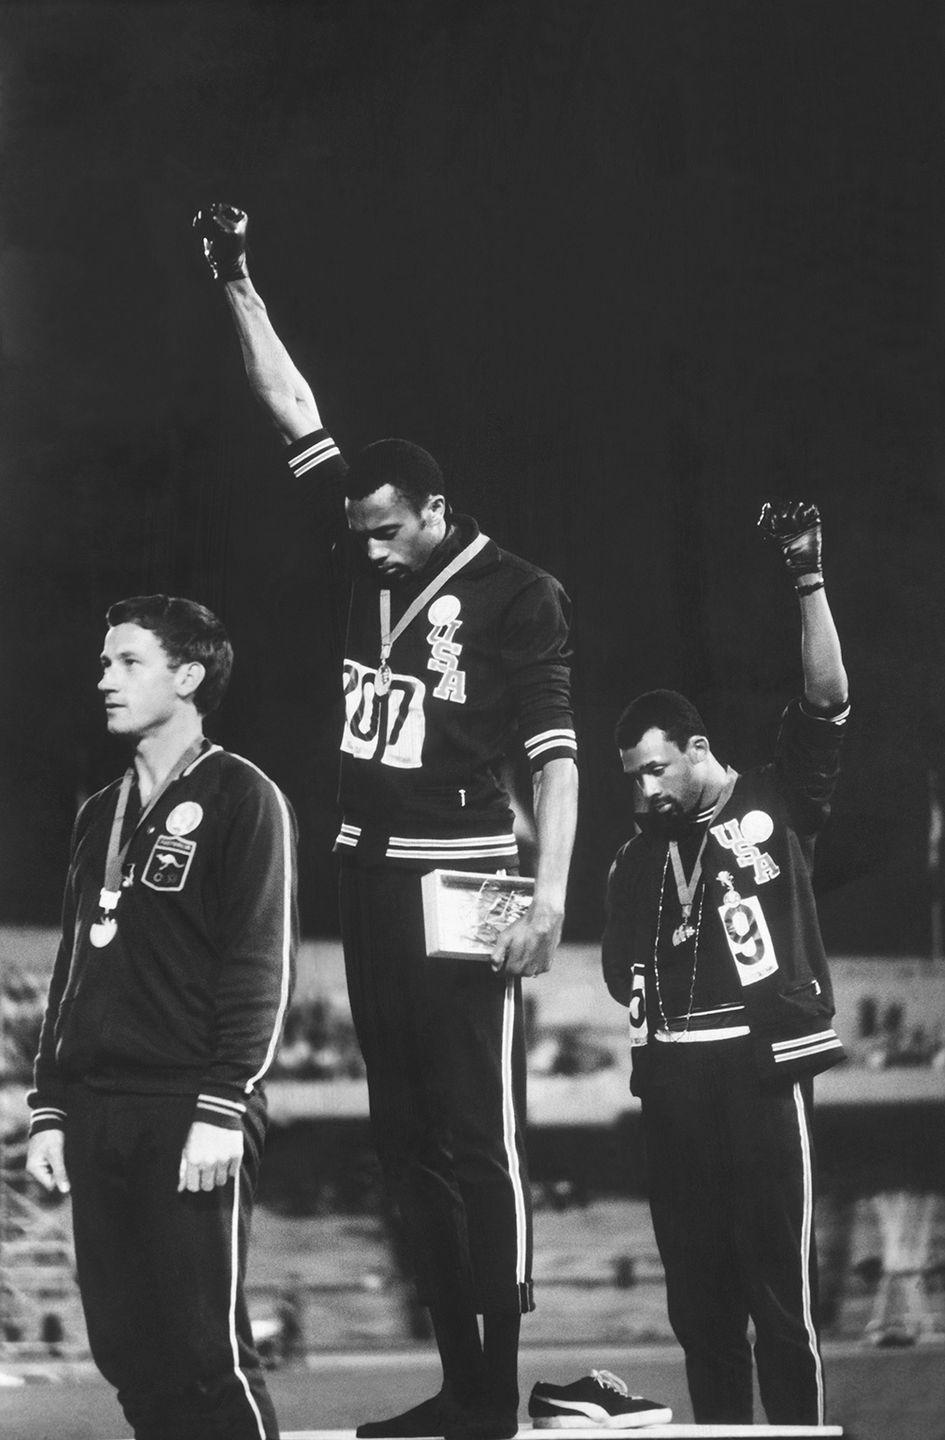 """<p>The most memorable image from the 1968 Olympics in Mexico City is the one of Tommie Smith and John Carlos, first- and third-place winners in the 200-meter race, giving the Black Power salute from the podium. """"If I win I am an American, not a Black American,"""" Smiths said. """"But if I did something bad then they would say 'a Negro'. We are Black and <a href=""""http://news.bbc.co.uk/onthisday/hi/dates/stories/october/17/newsid_3535000/3535348.stm"""" rel=""""nofollow noopener"""" target=""""_blank"""" data-ylk=""""slk:we are proud of being Black"""" class=""""link rapid-noclick-resp"""">we are proud of being Black</a>.""""</p>"""